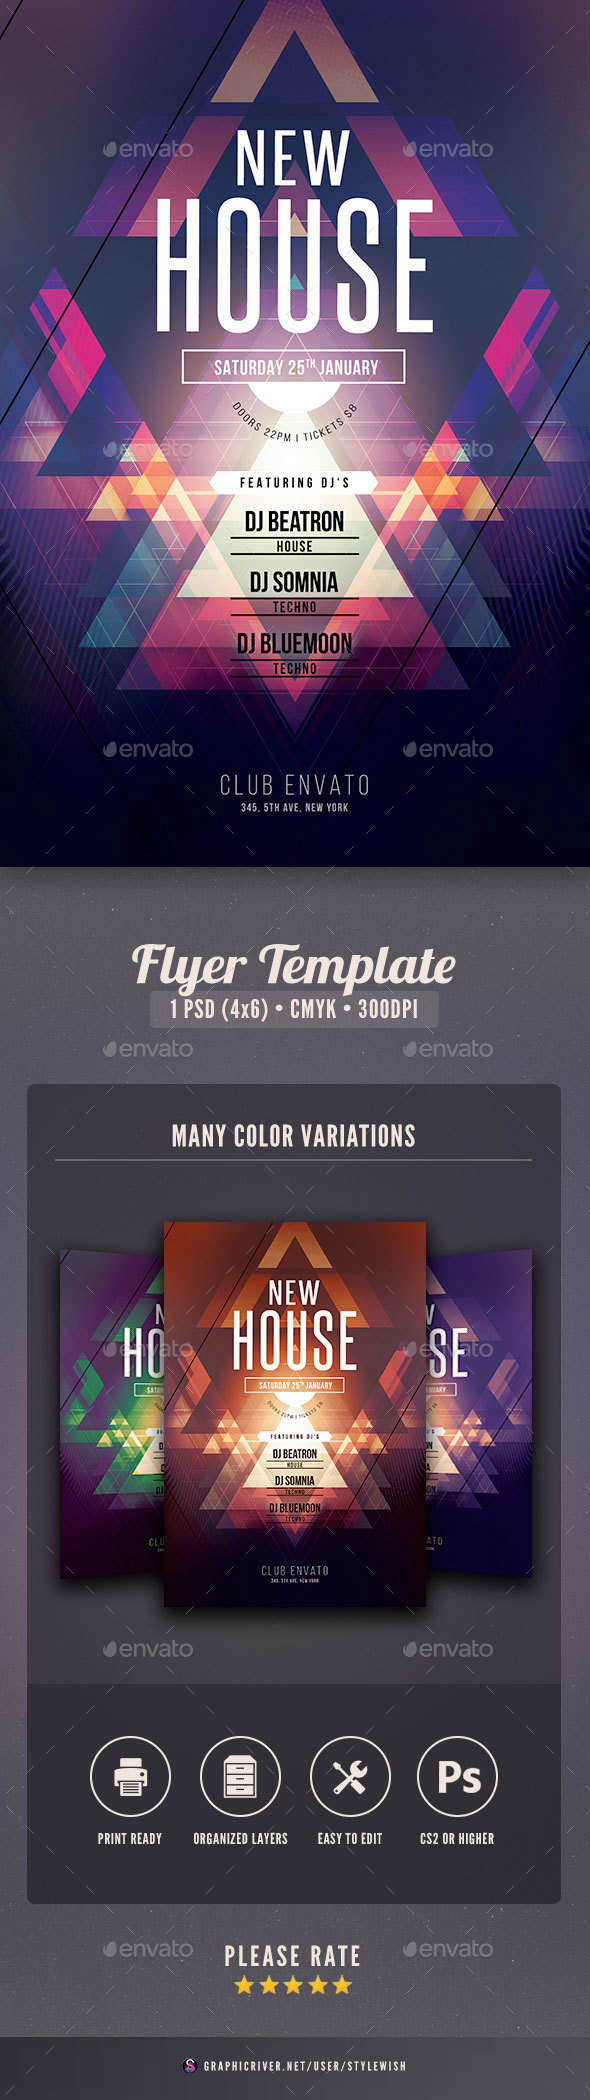 New House Flyer - Clubs & Parties Events